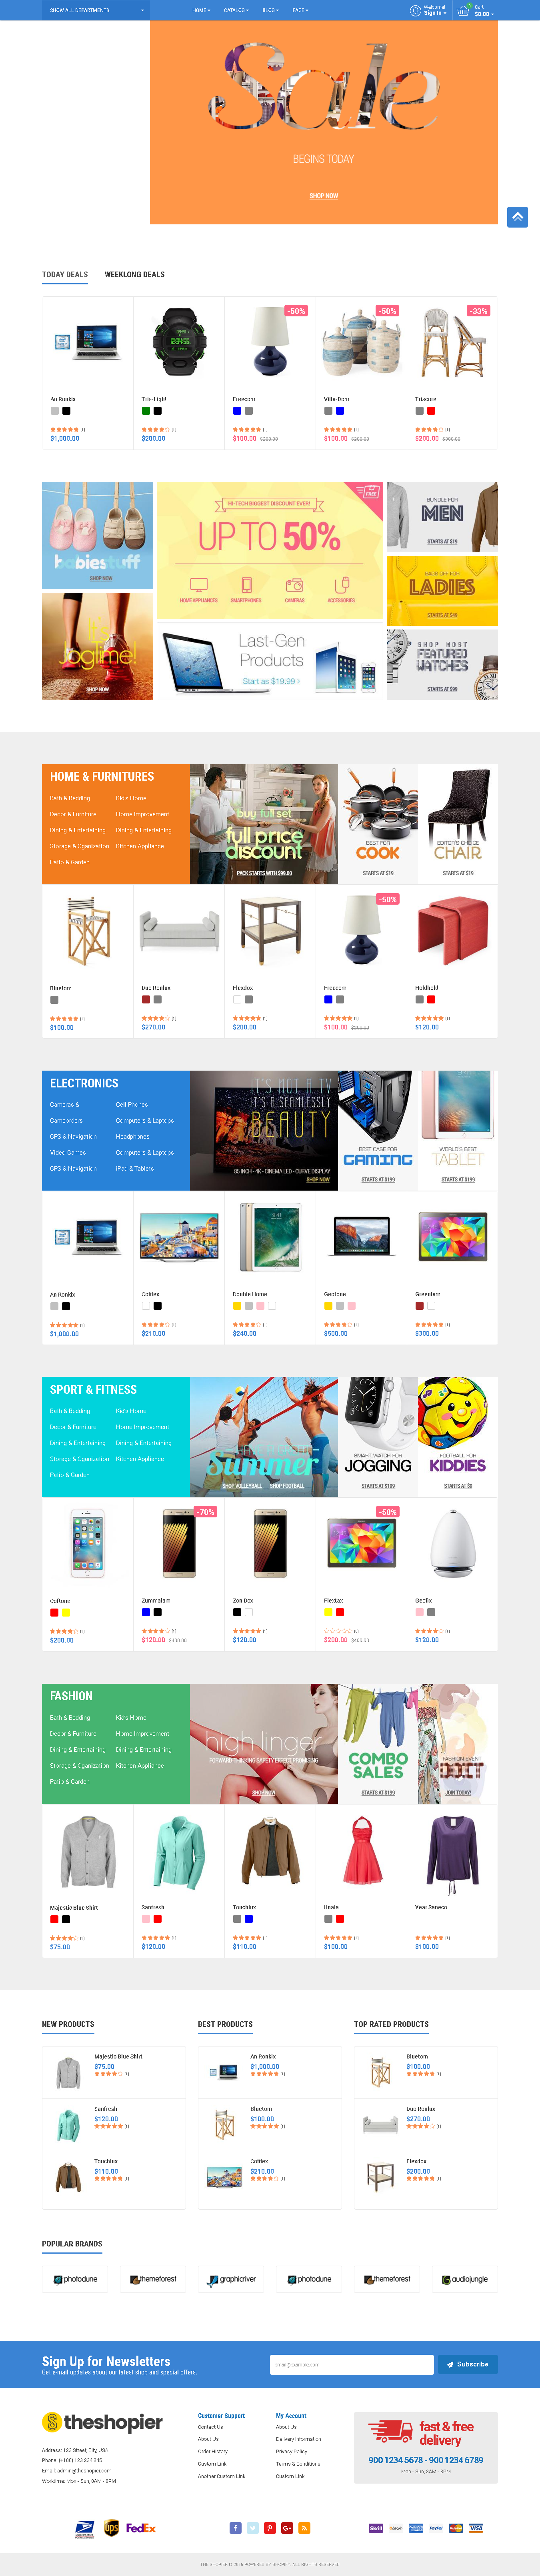 Best SHOPIFY Premium Themes Collection for SUPERMARKET Store 2017 - SHOPIER Creative Multi-Purpose Shopify Theme - Fashion,Supermarket,Electronics,Minimal